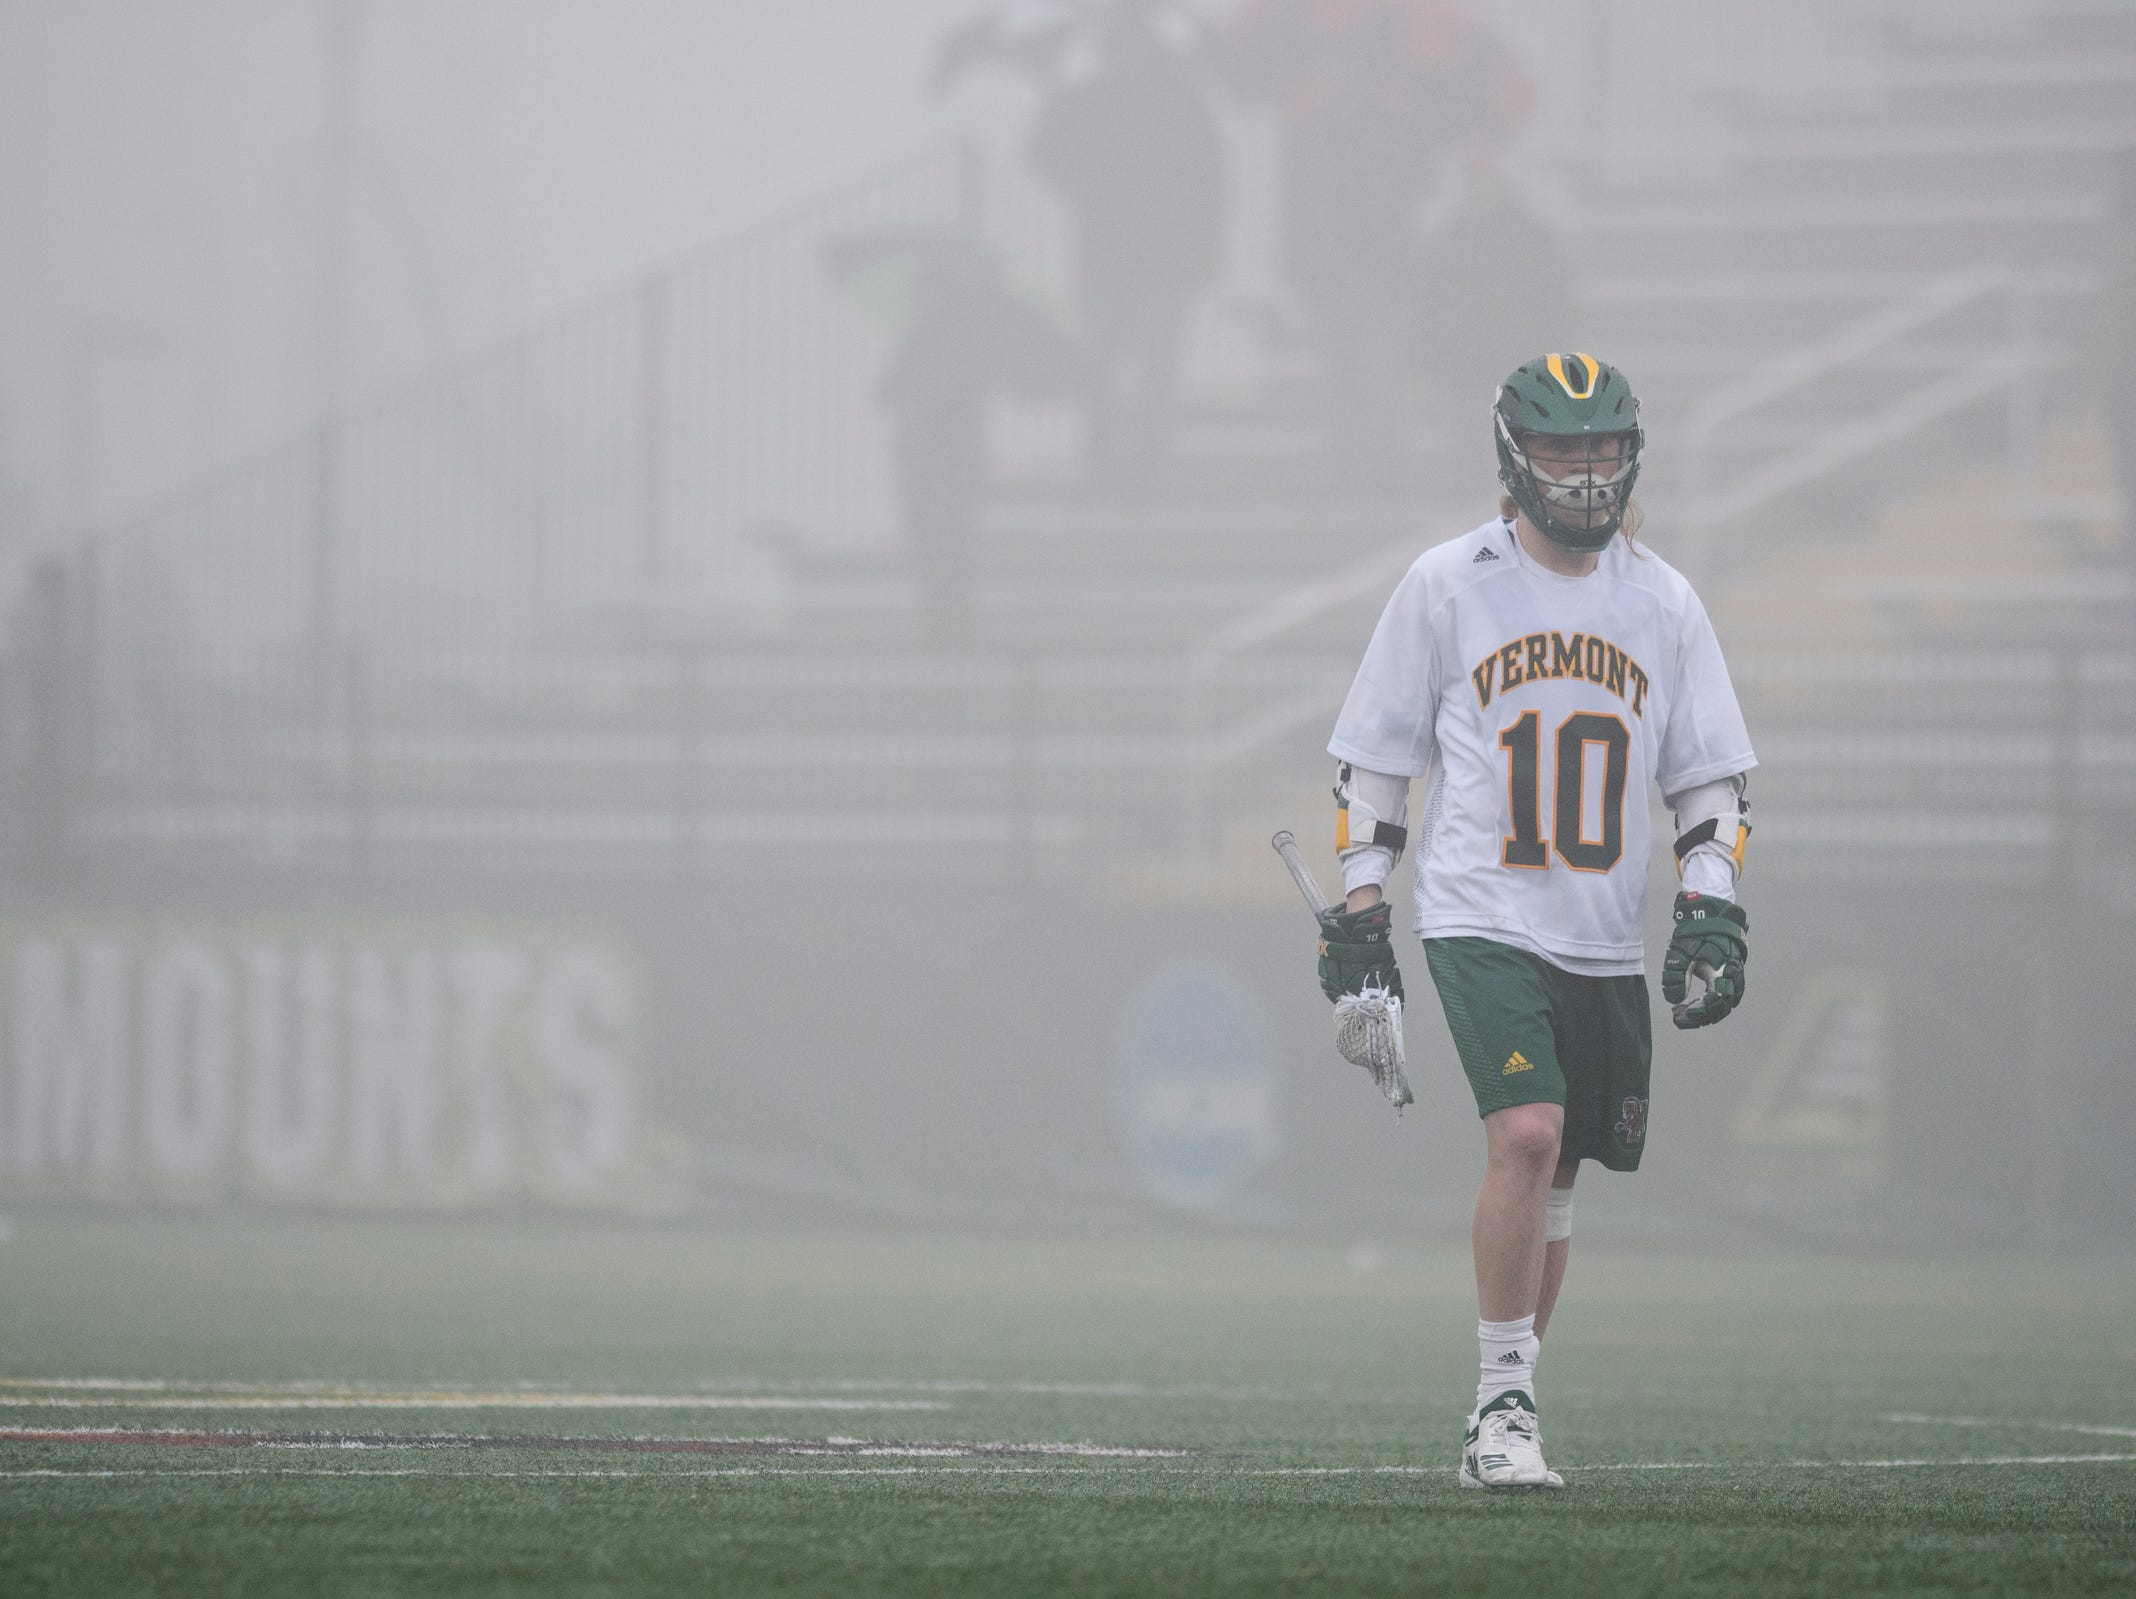 Vermont's David Closterman (10) walks on the field as the fog rolls in during the men's lacrosse game between the Stony Brook Sea Wolves and the Vermont Catamounts at Virtue Field on Saturday afternoon April 20, 2019 in Burlington, Vermont.